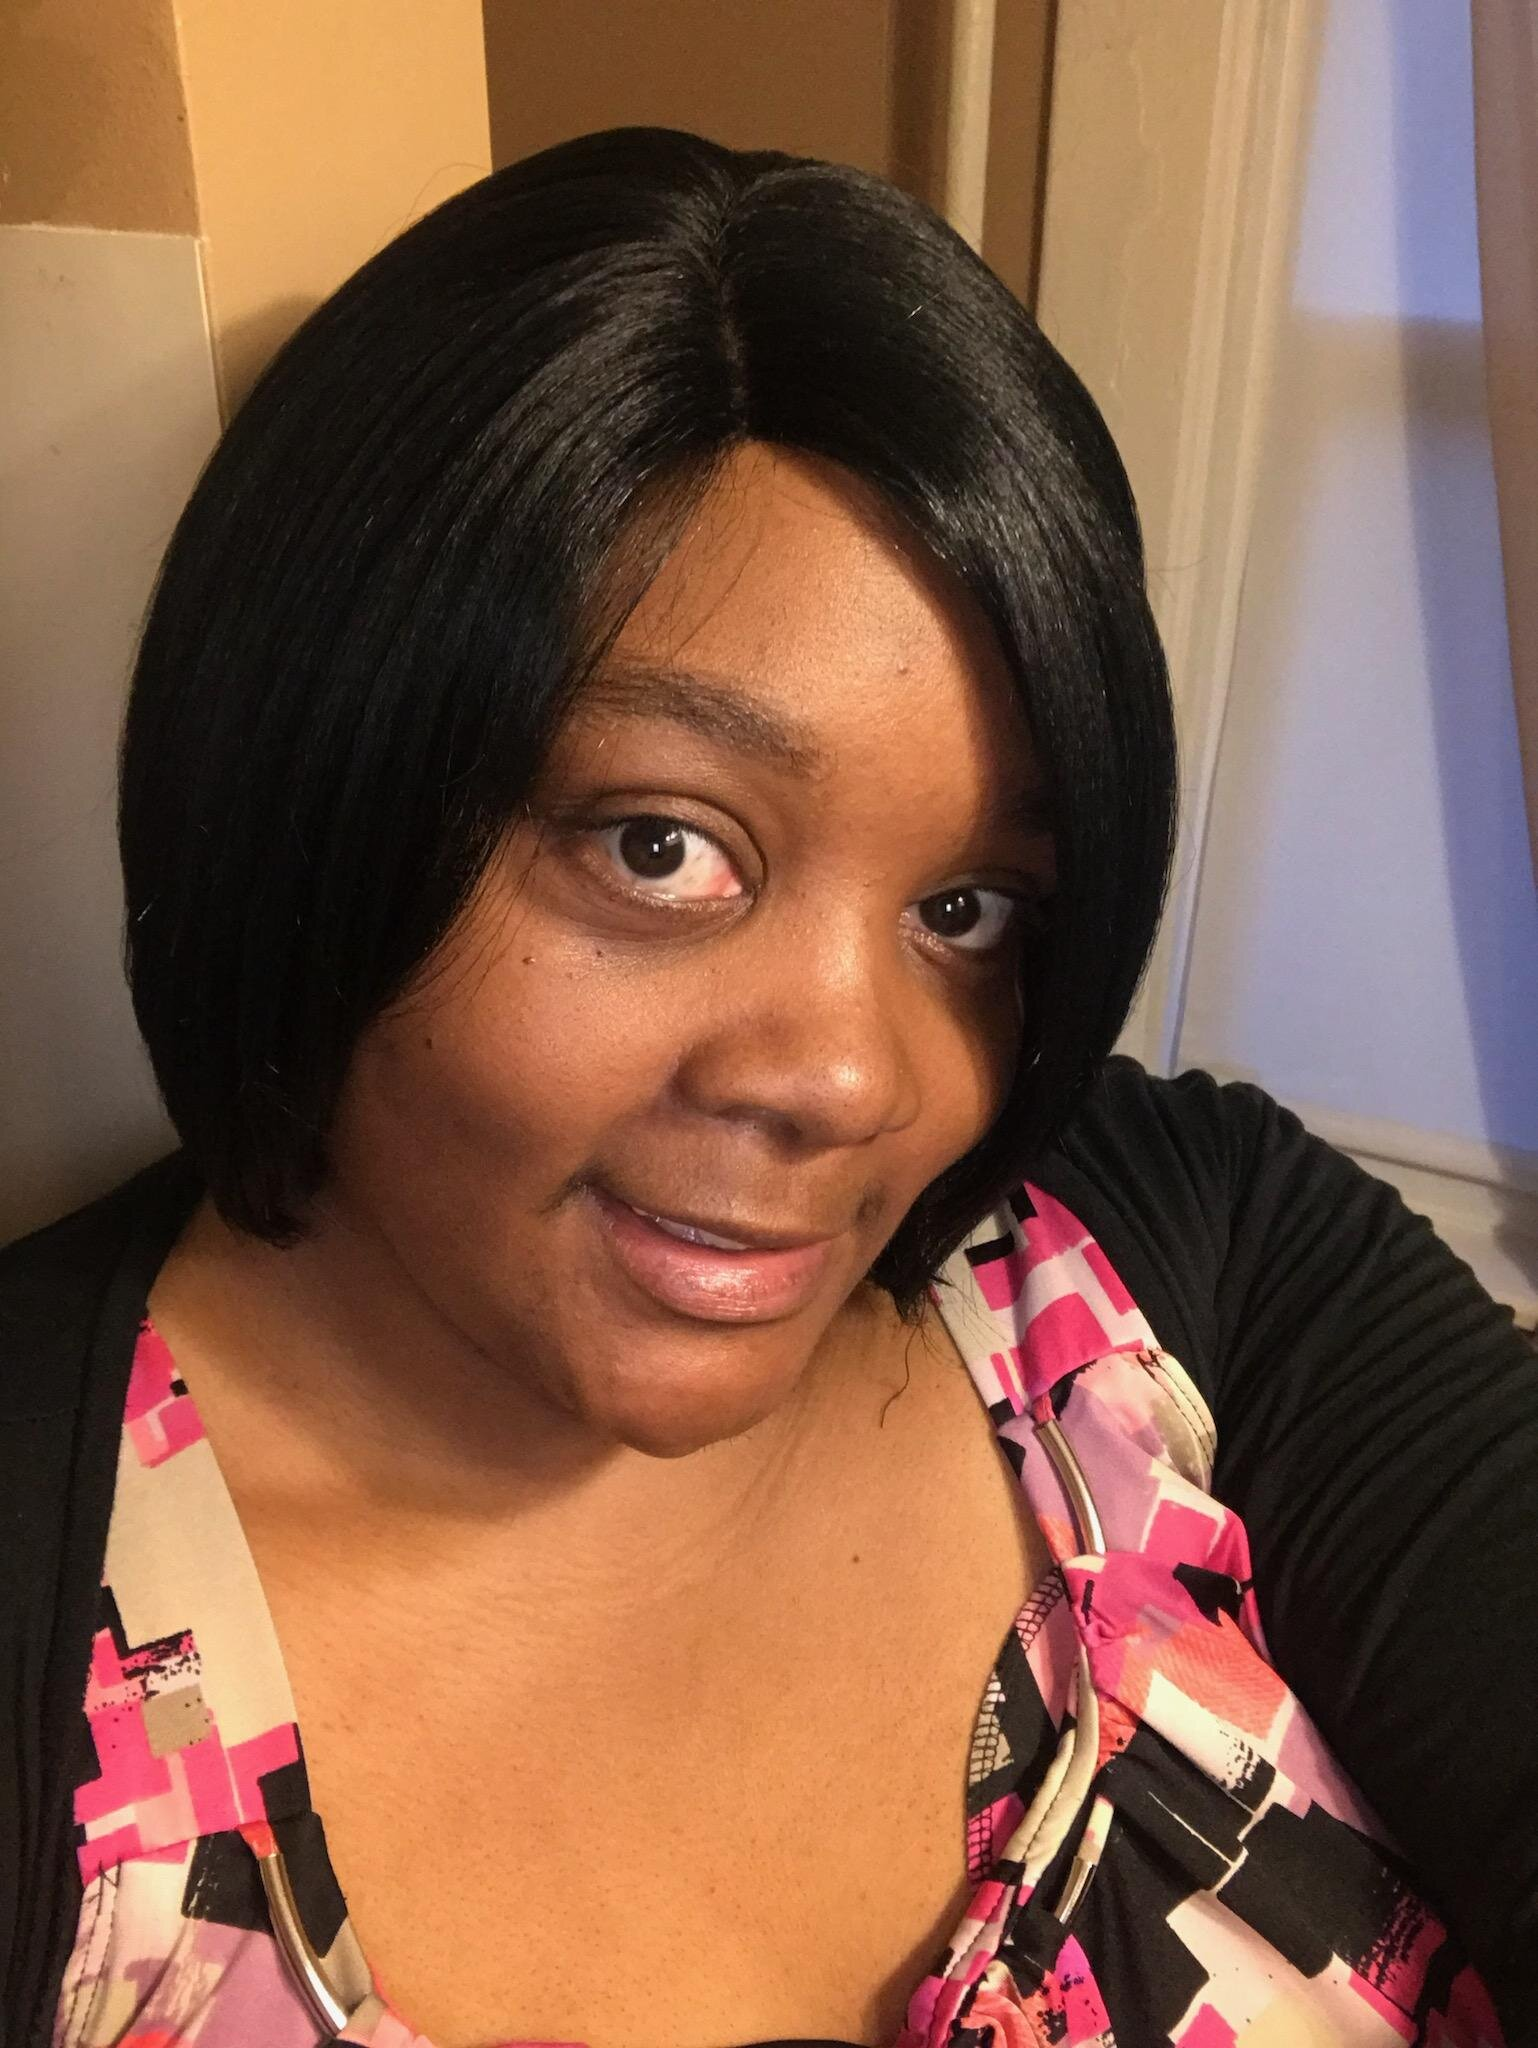 In Loving Memory ofGina Willetta Rozier - May 14, 1976 - July 14, 2020Virtual Memorial Service was held July 30, 2020 at 7:00 PM EDTWatch recording on FacebookView Video Recording of Service on Web Page